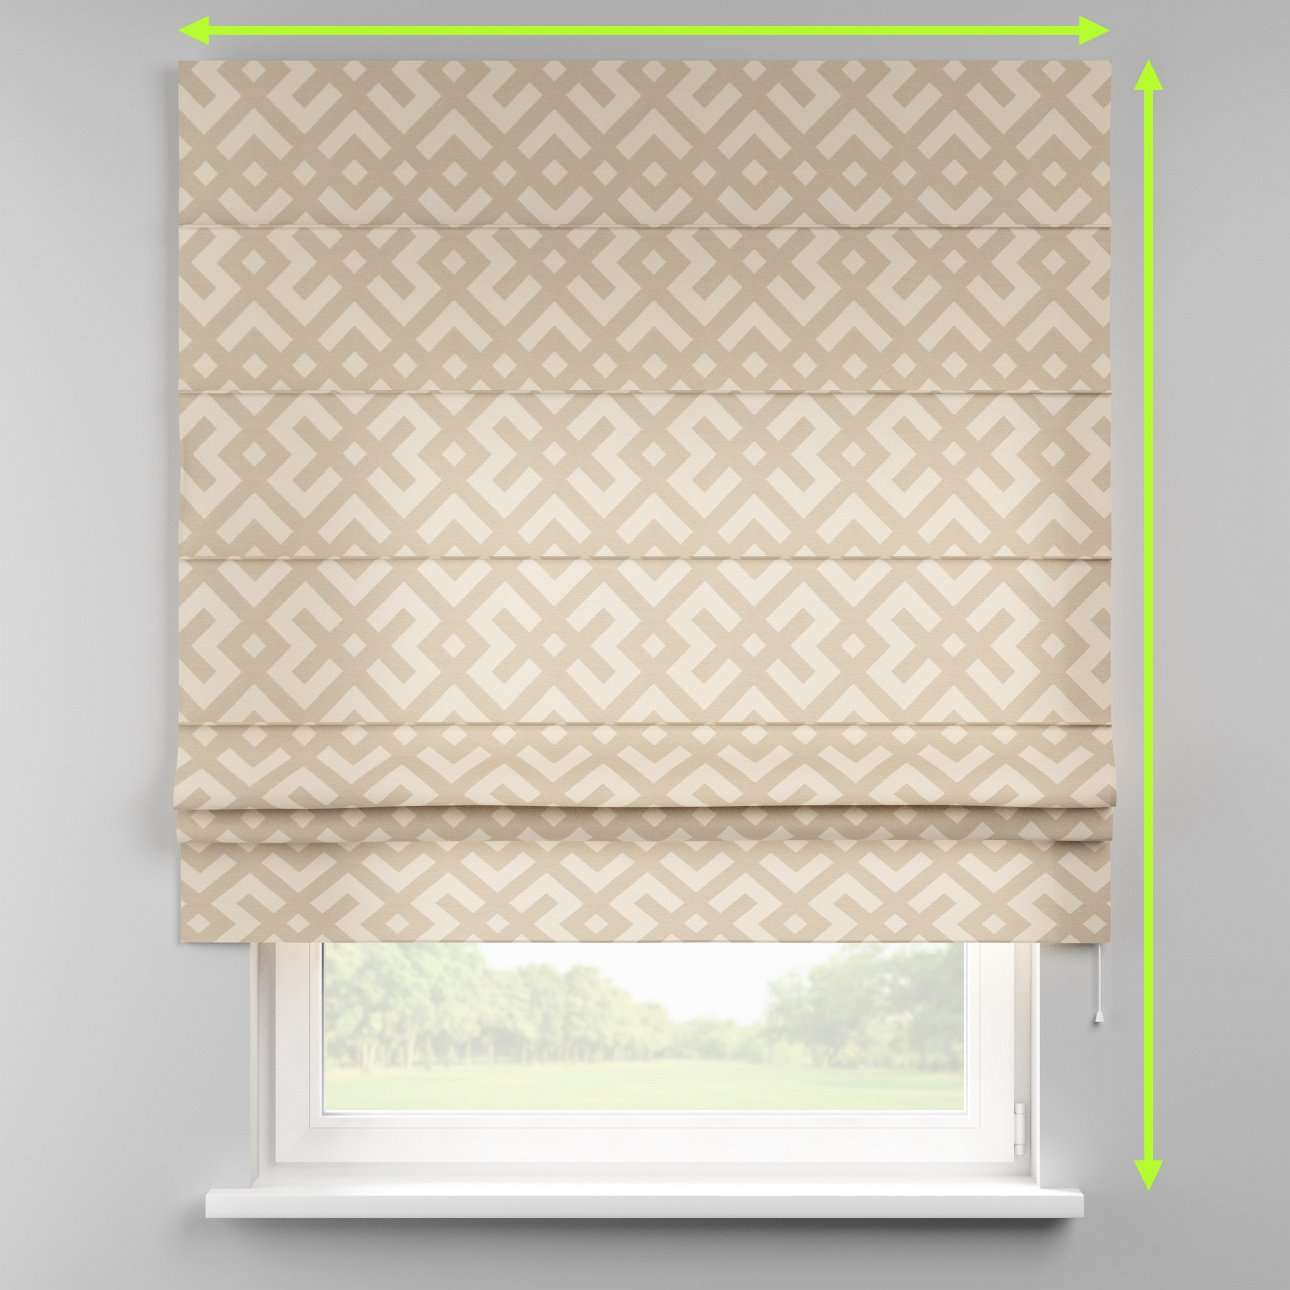 Padva roman blind  in collection Rustica, fabric: 140-95